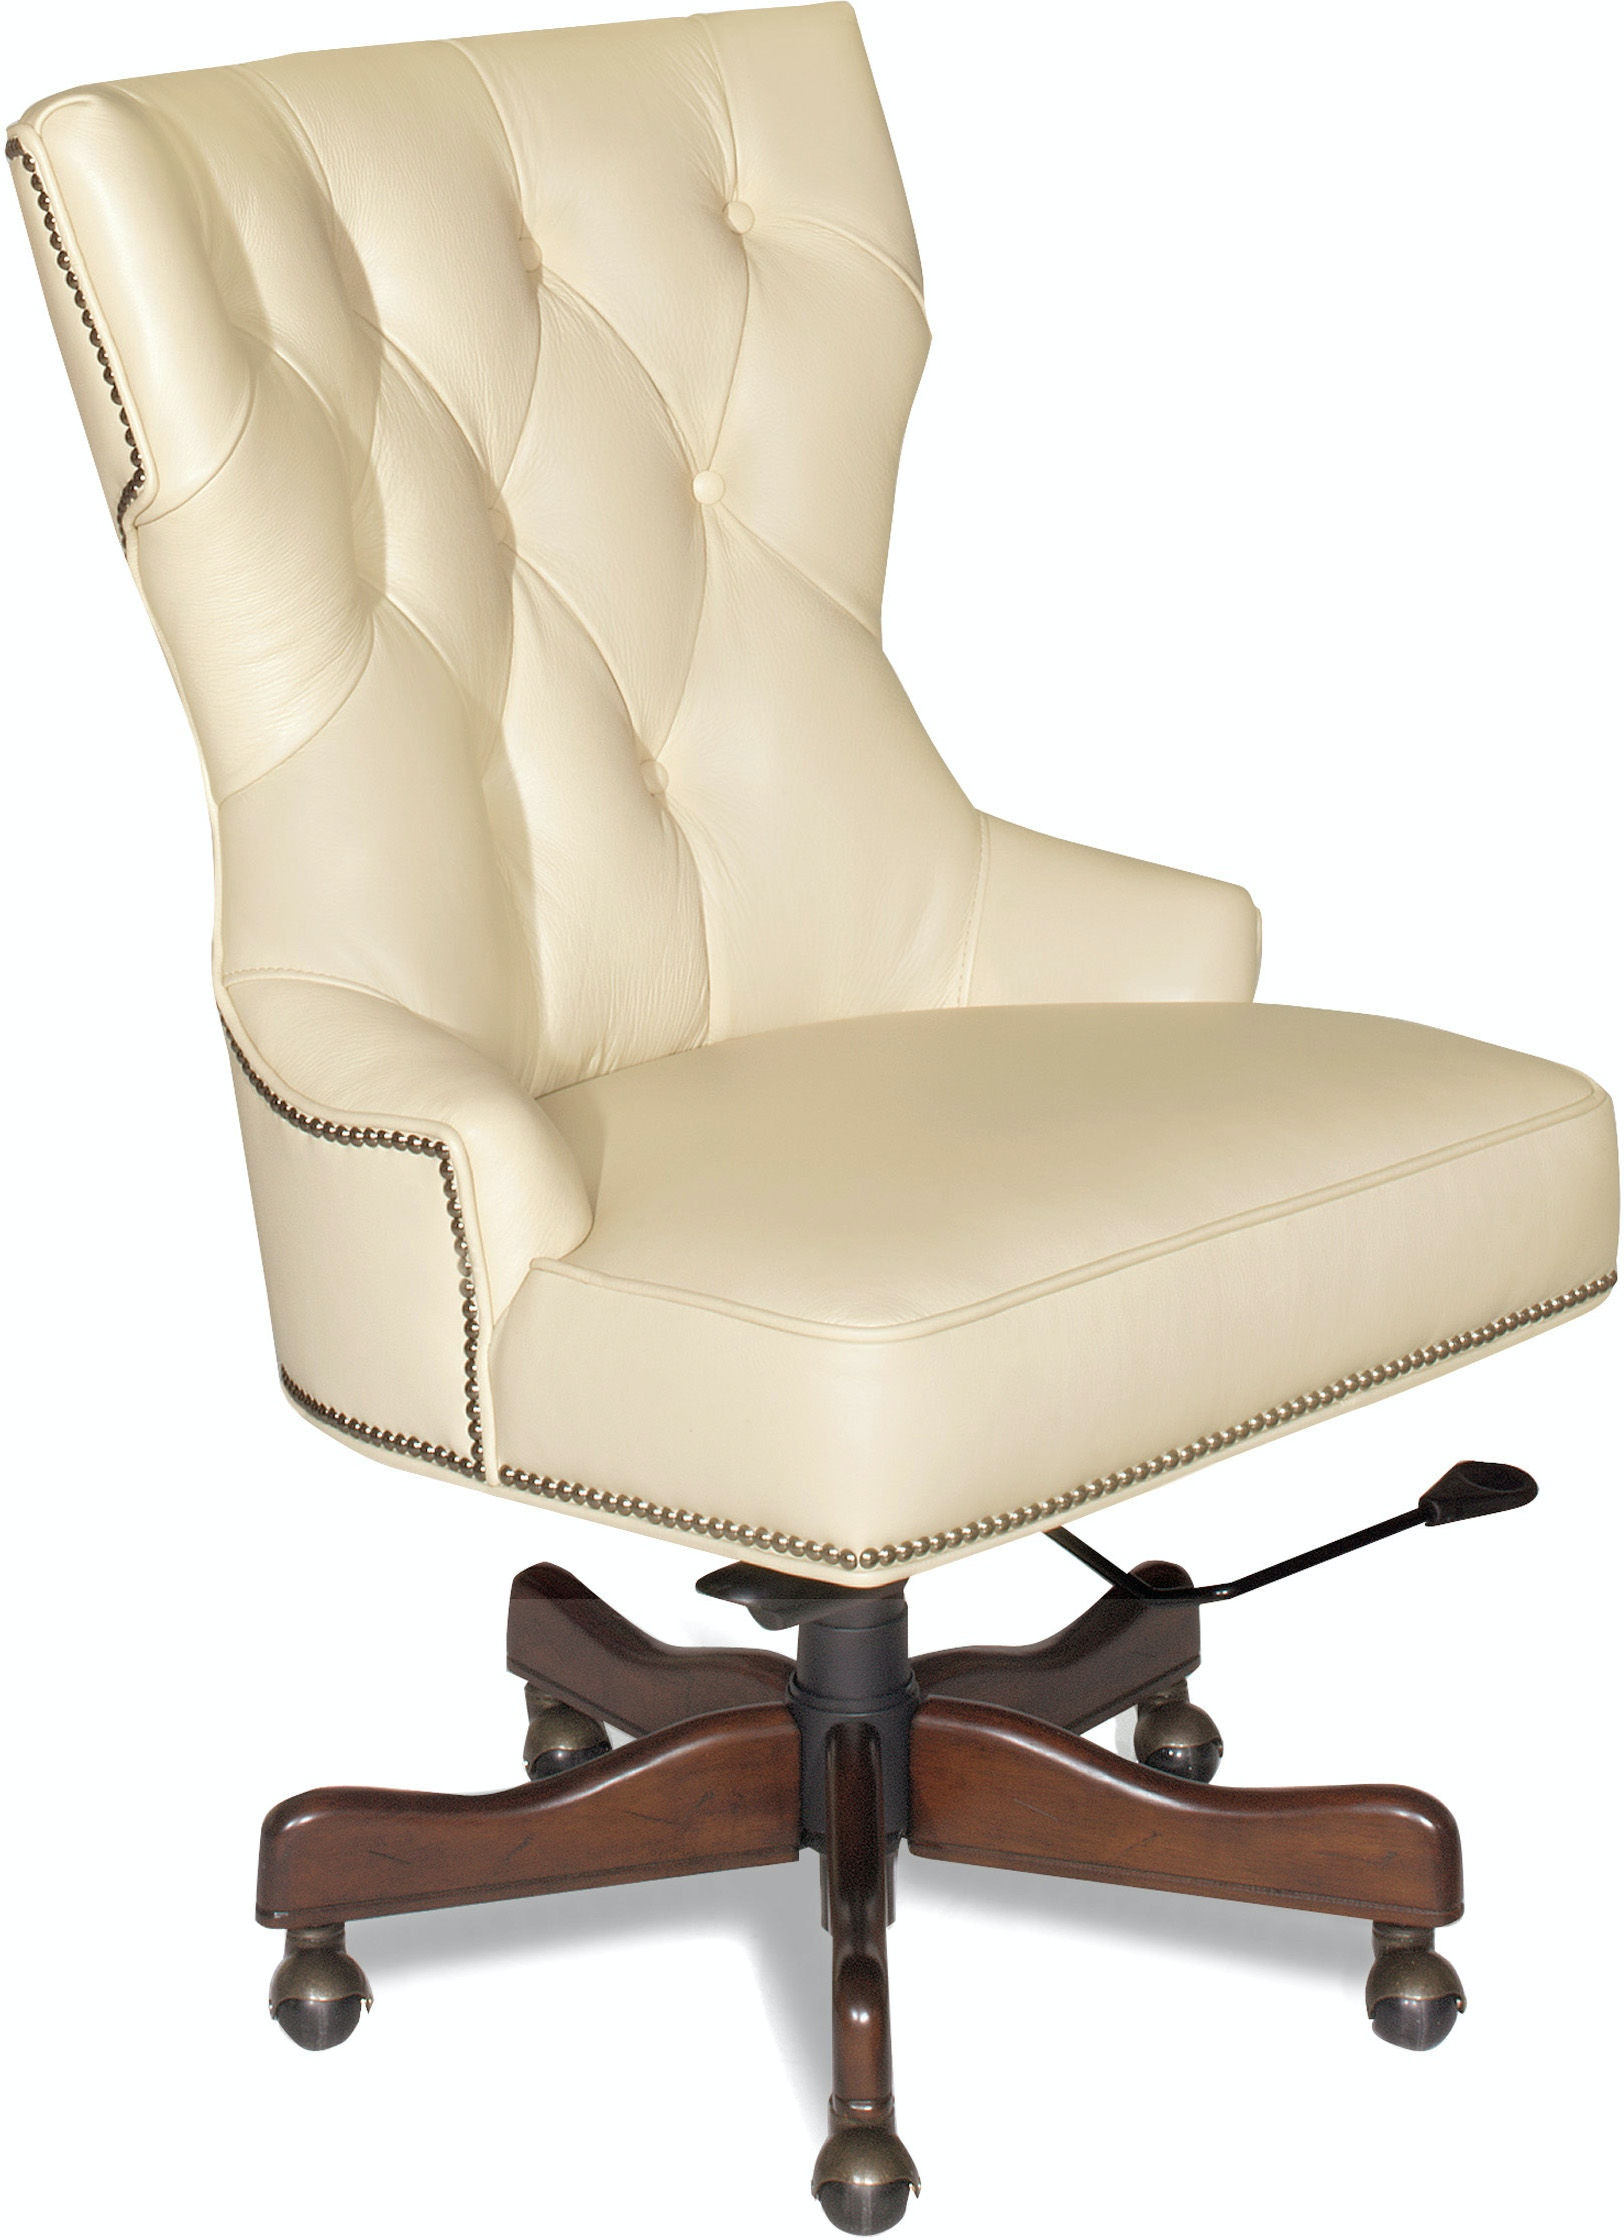 Pleasing Hooker Furniture Home Office Primm Executive Swivel Tilt Gmtry Best Dining Table And Chair Ideas Images Gmtryco